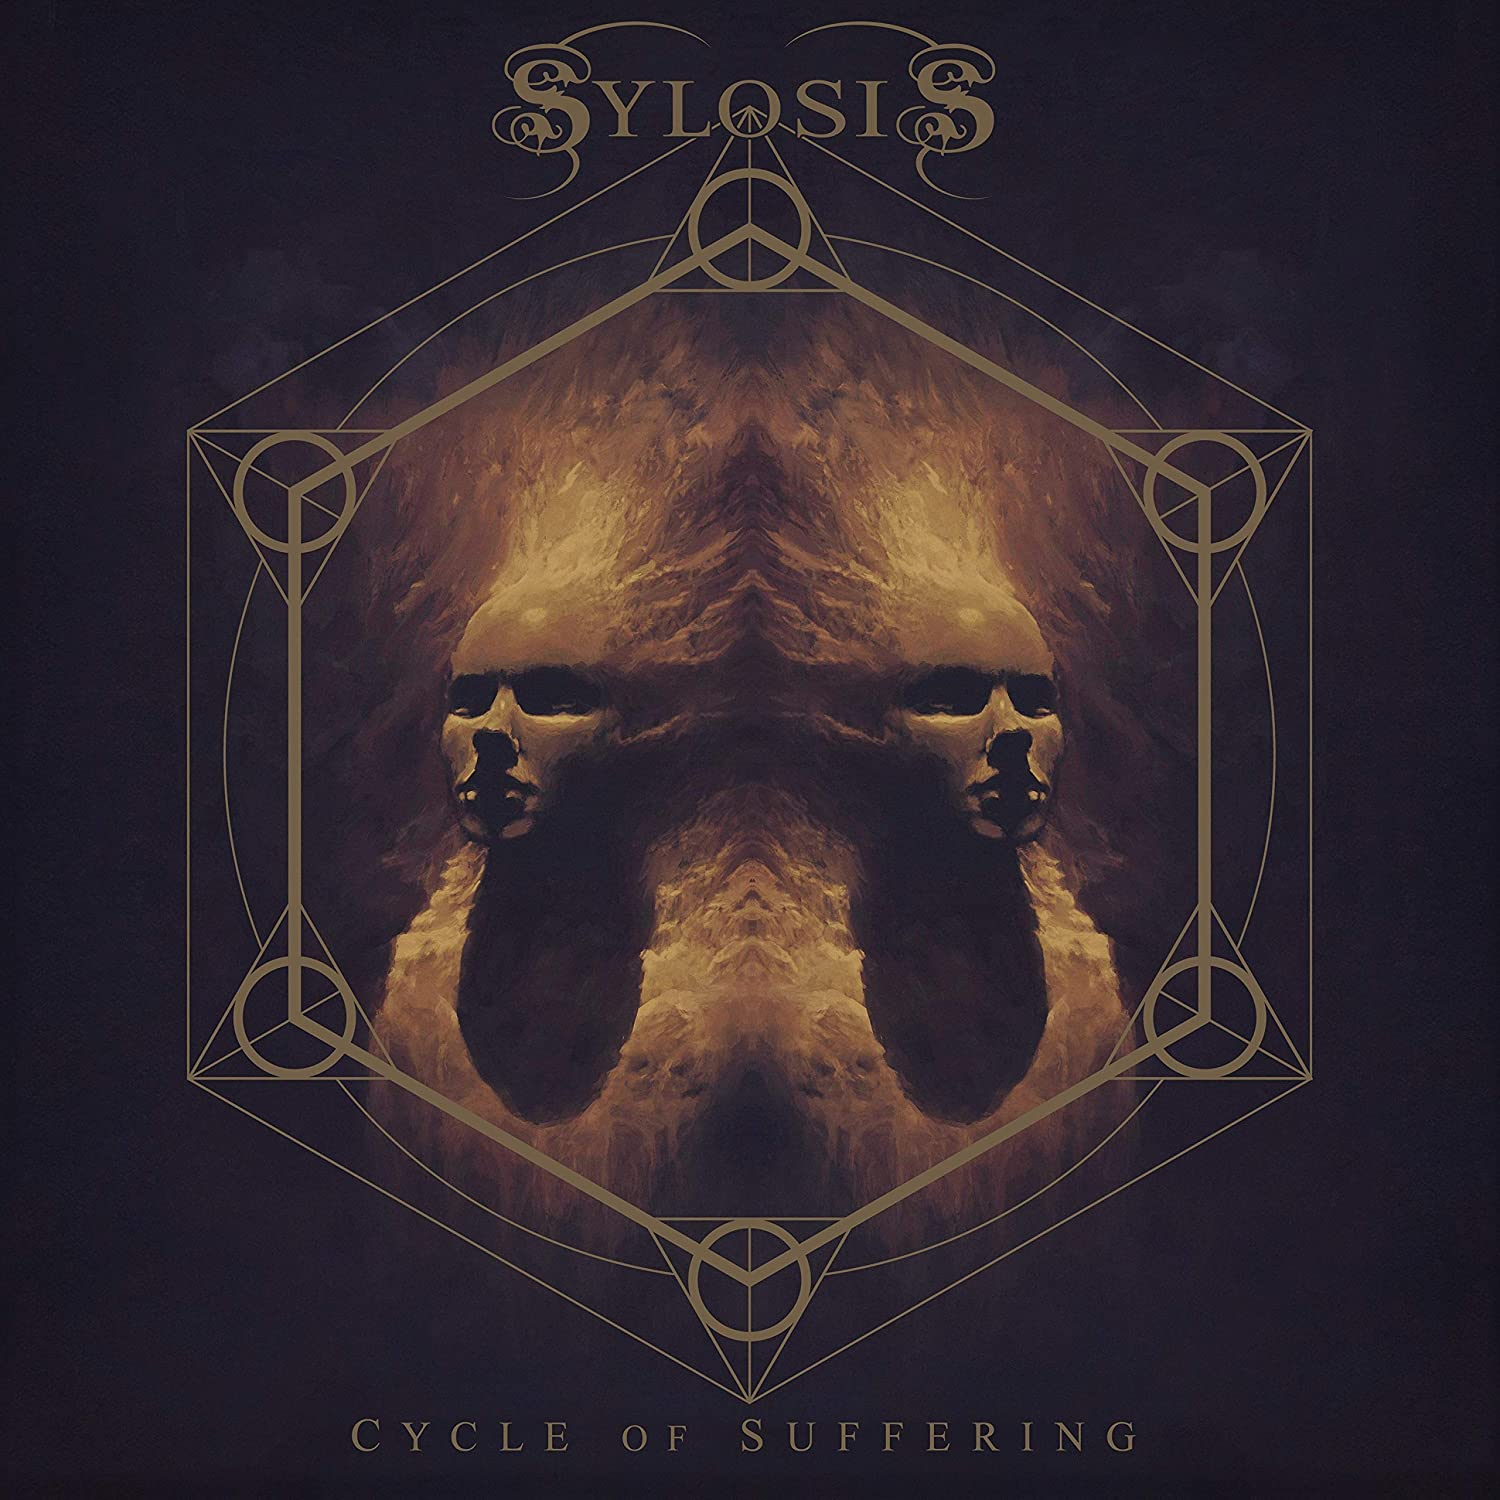 Cycle Of Suffering: Amazon.com.mx: Música